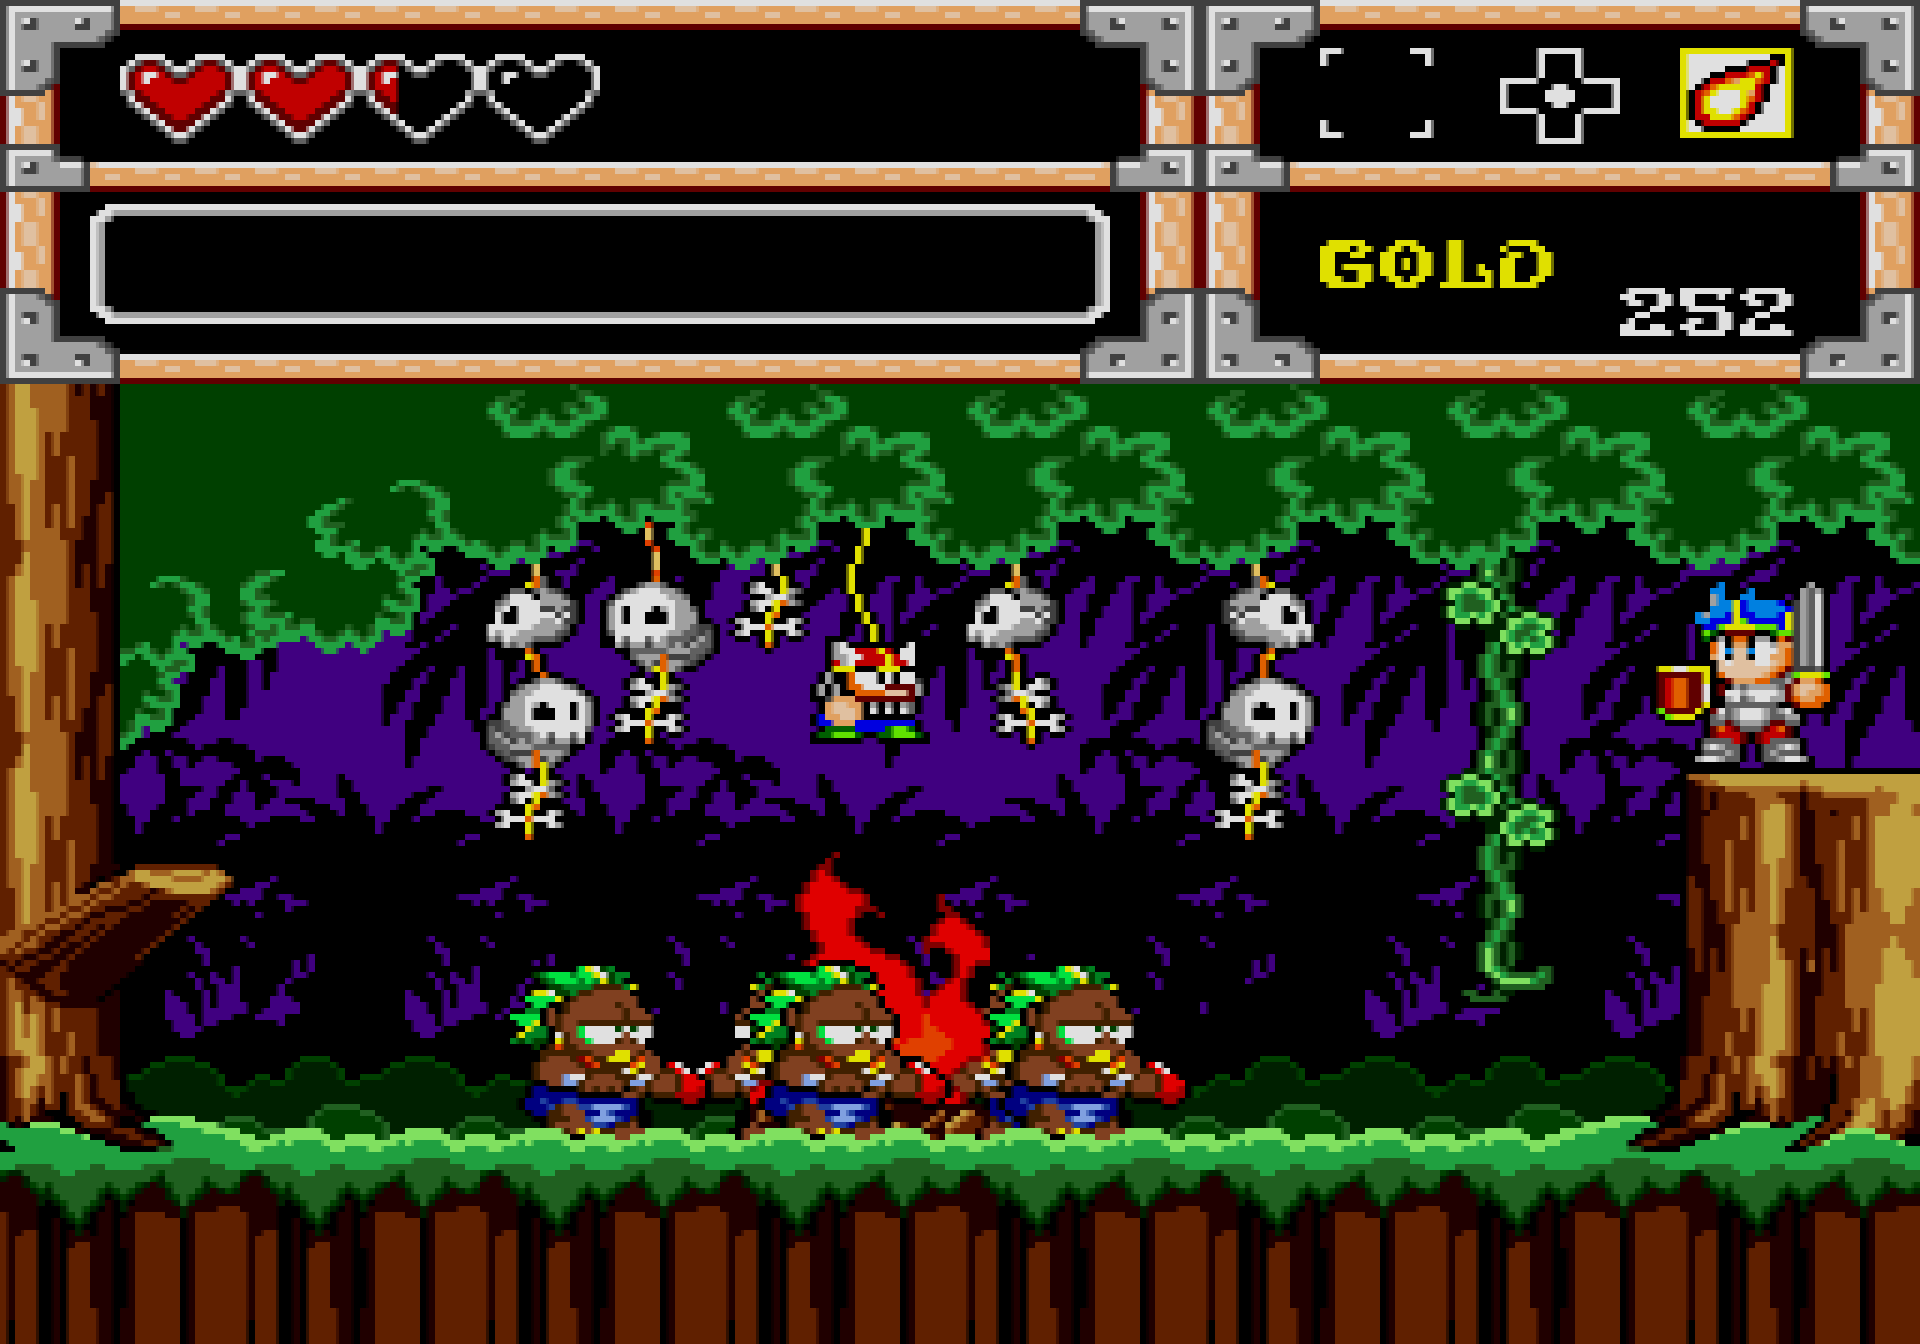 Wonder Boy in Monster World probably a bit racist this screenshot isn't it?